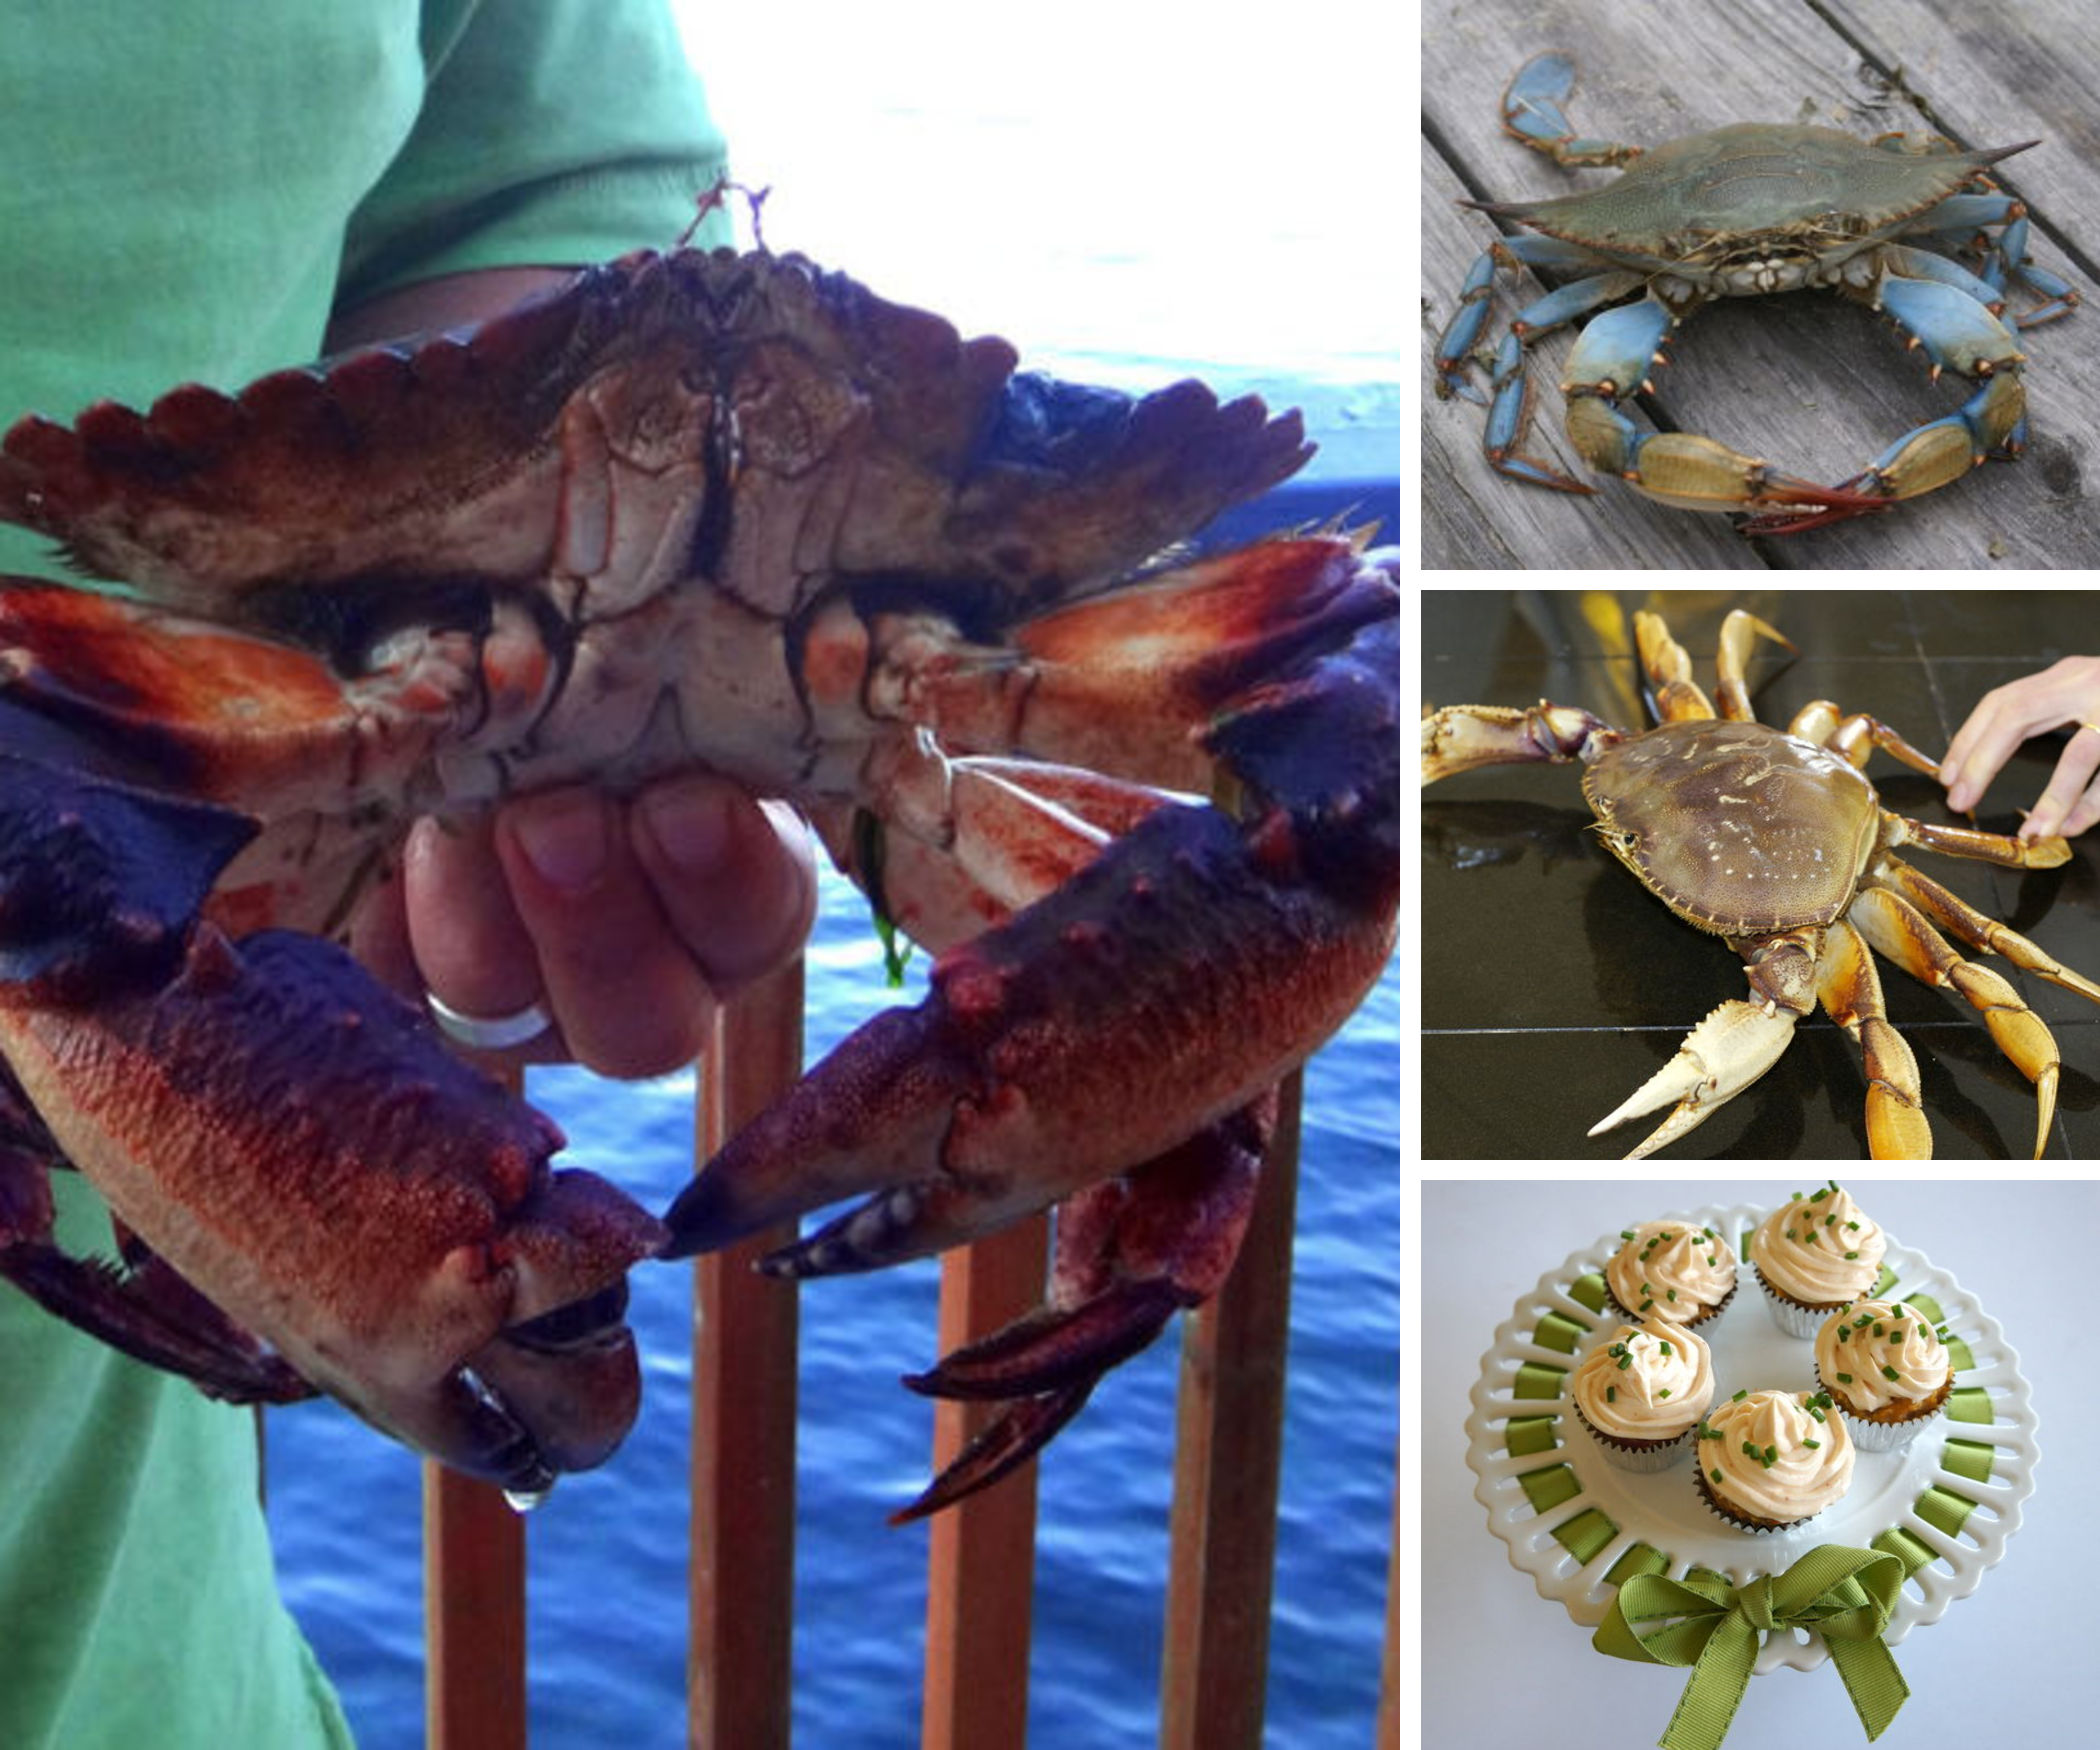 Catching and Cooking Crab